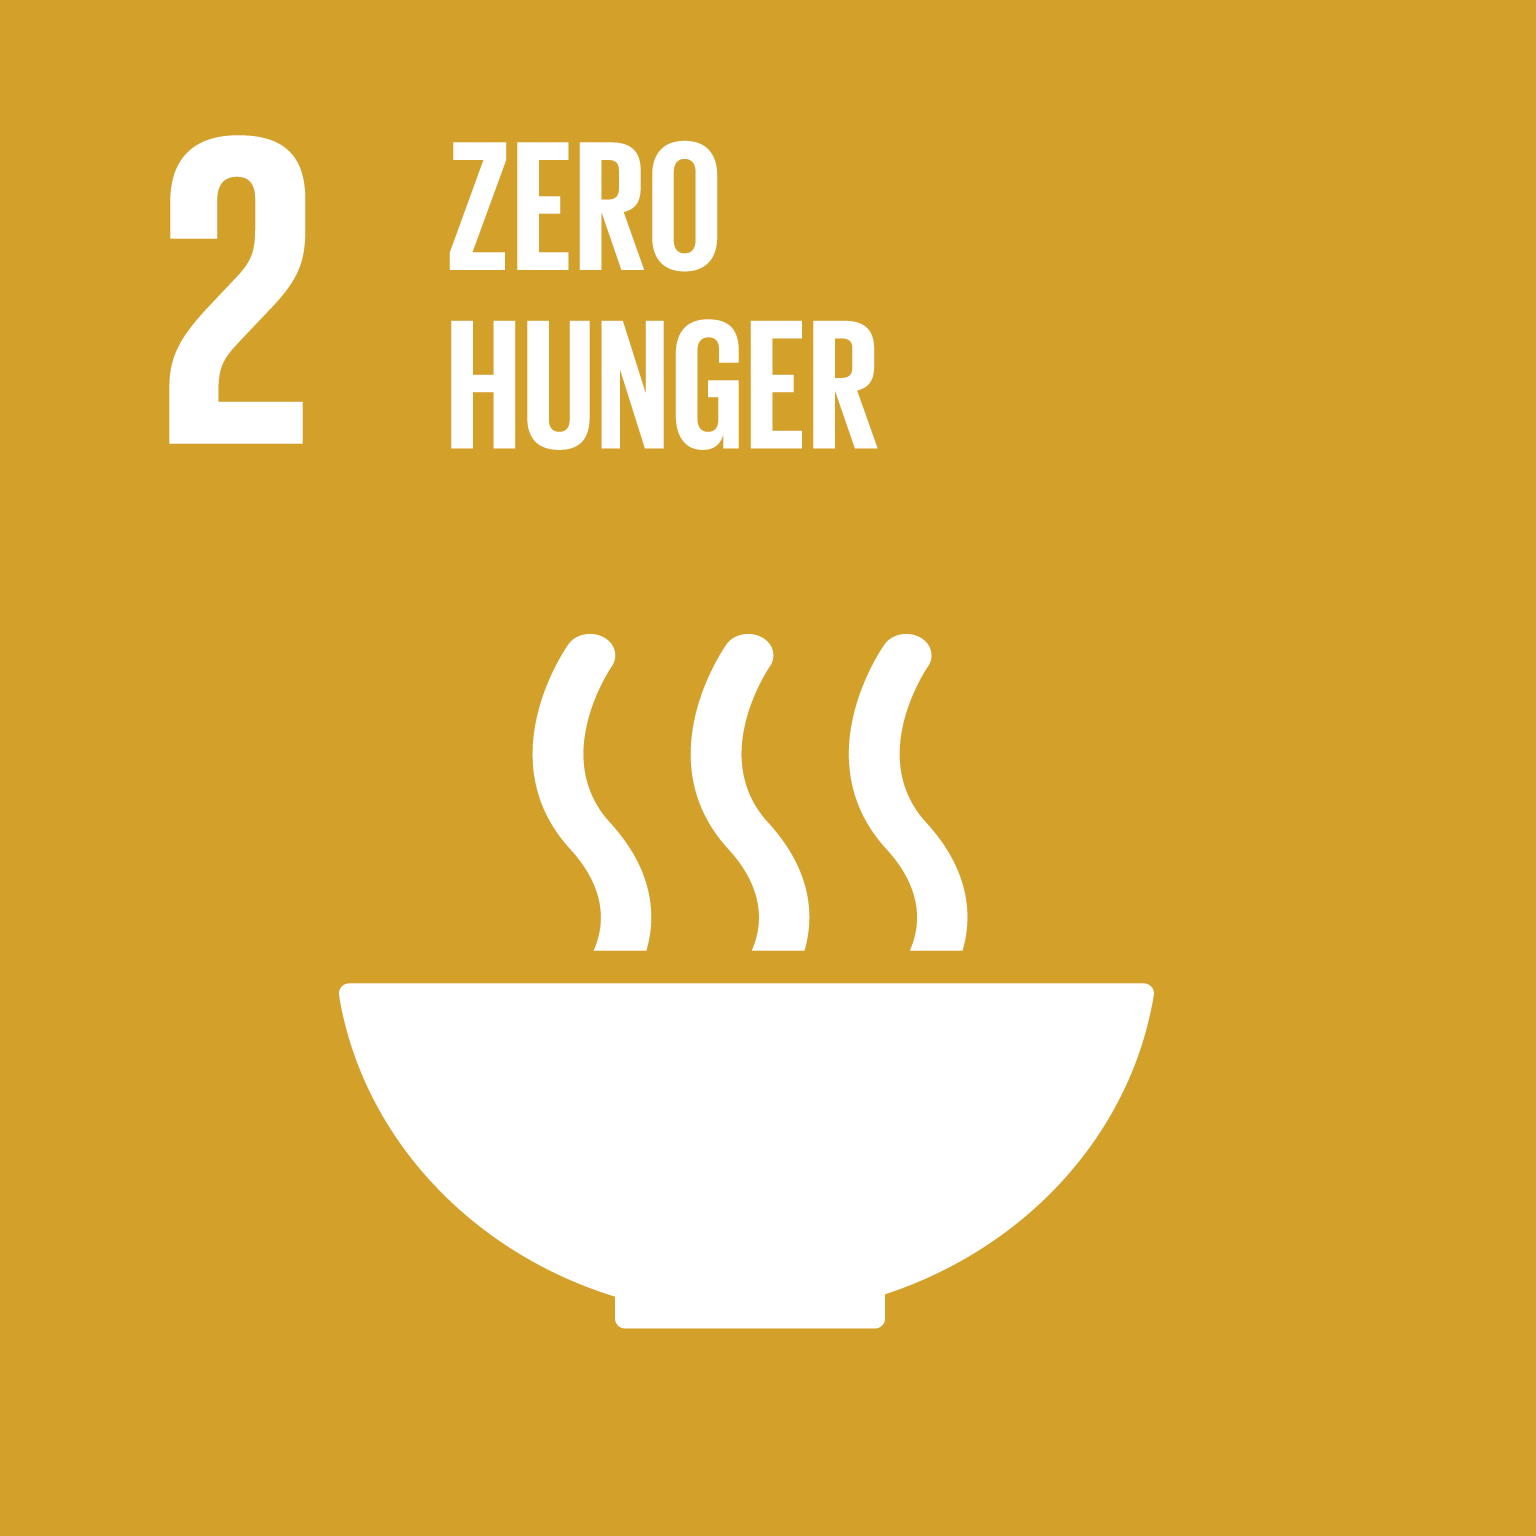 Sustainable Development Goal 2 icon